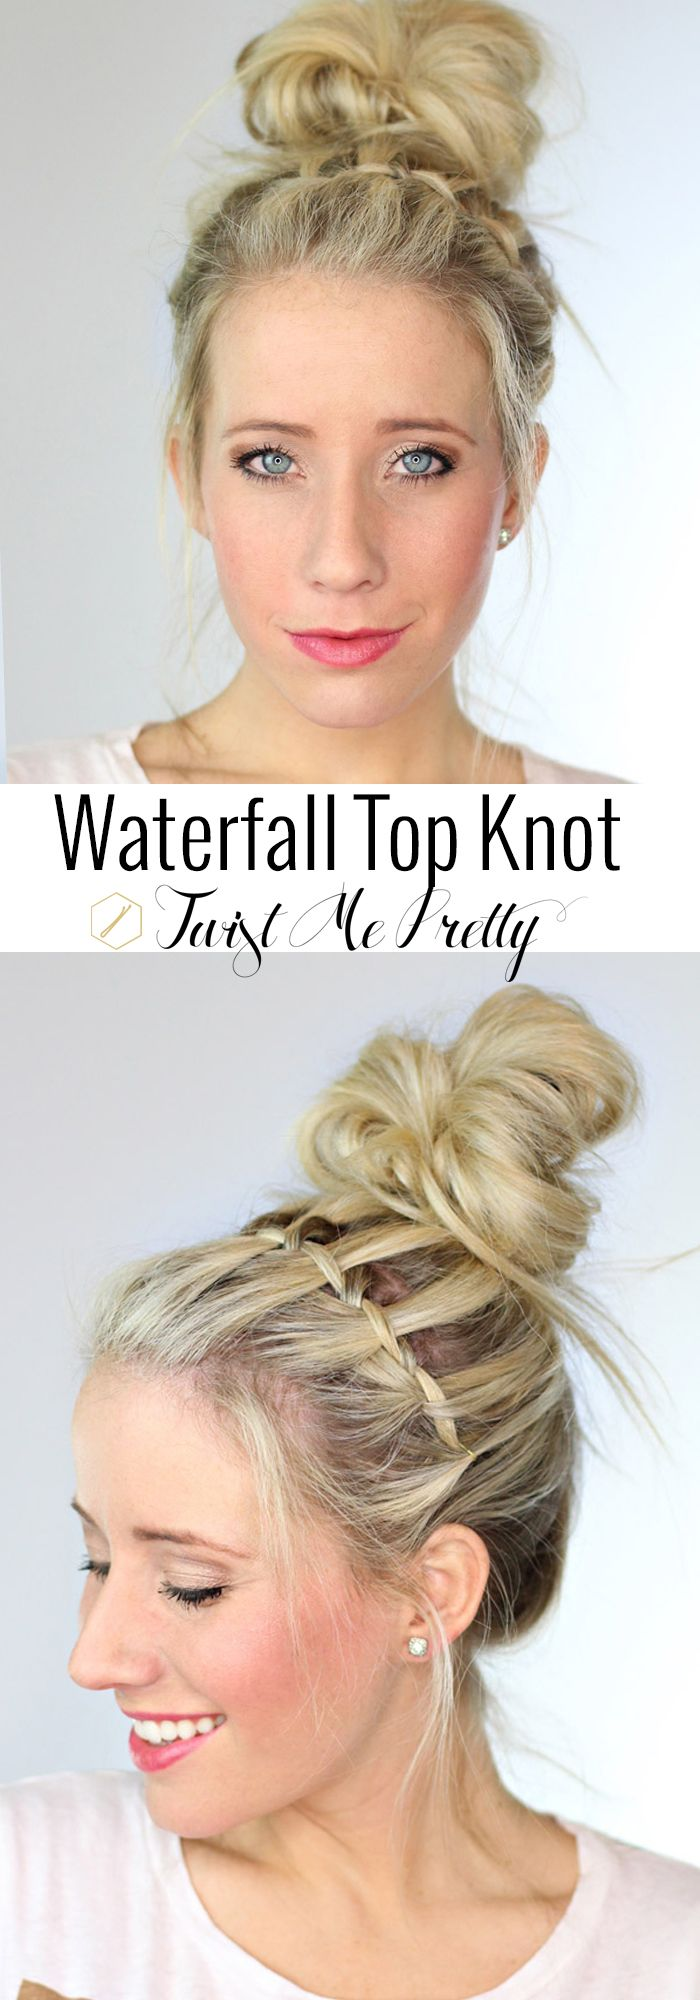 455 best hair images on pinterest | hairstyles, hair and braids